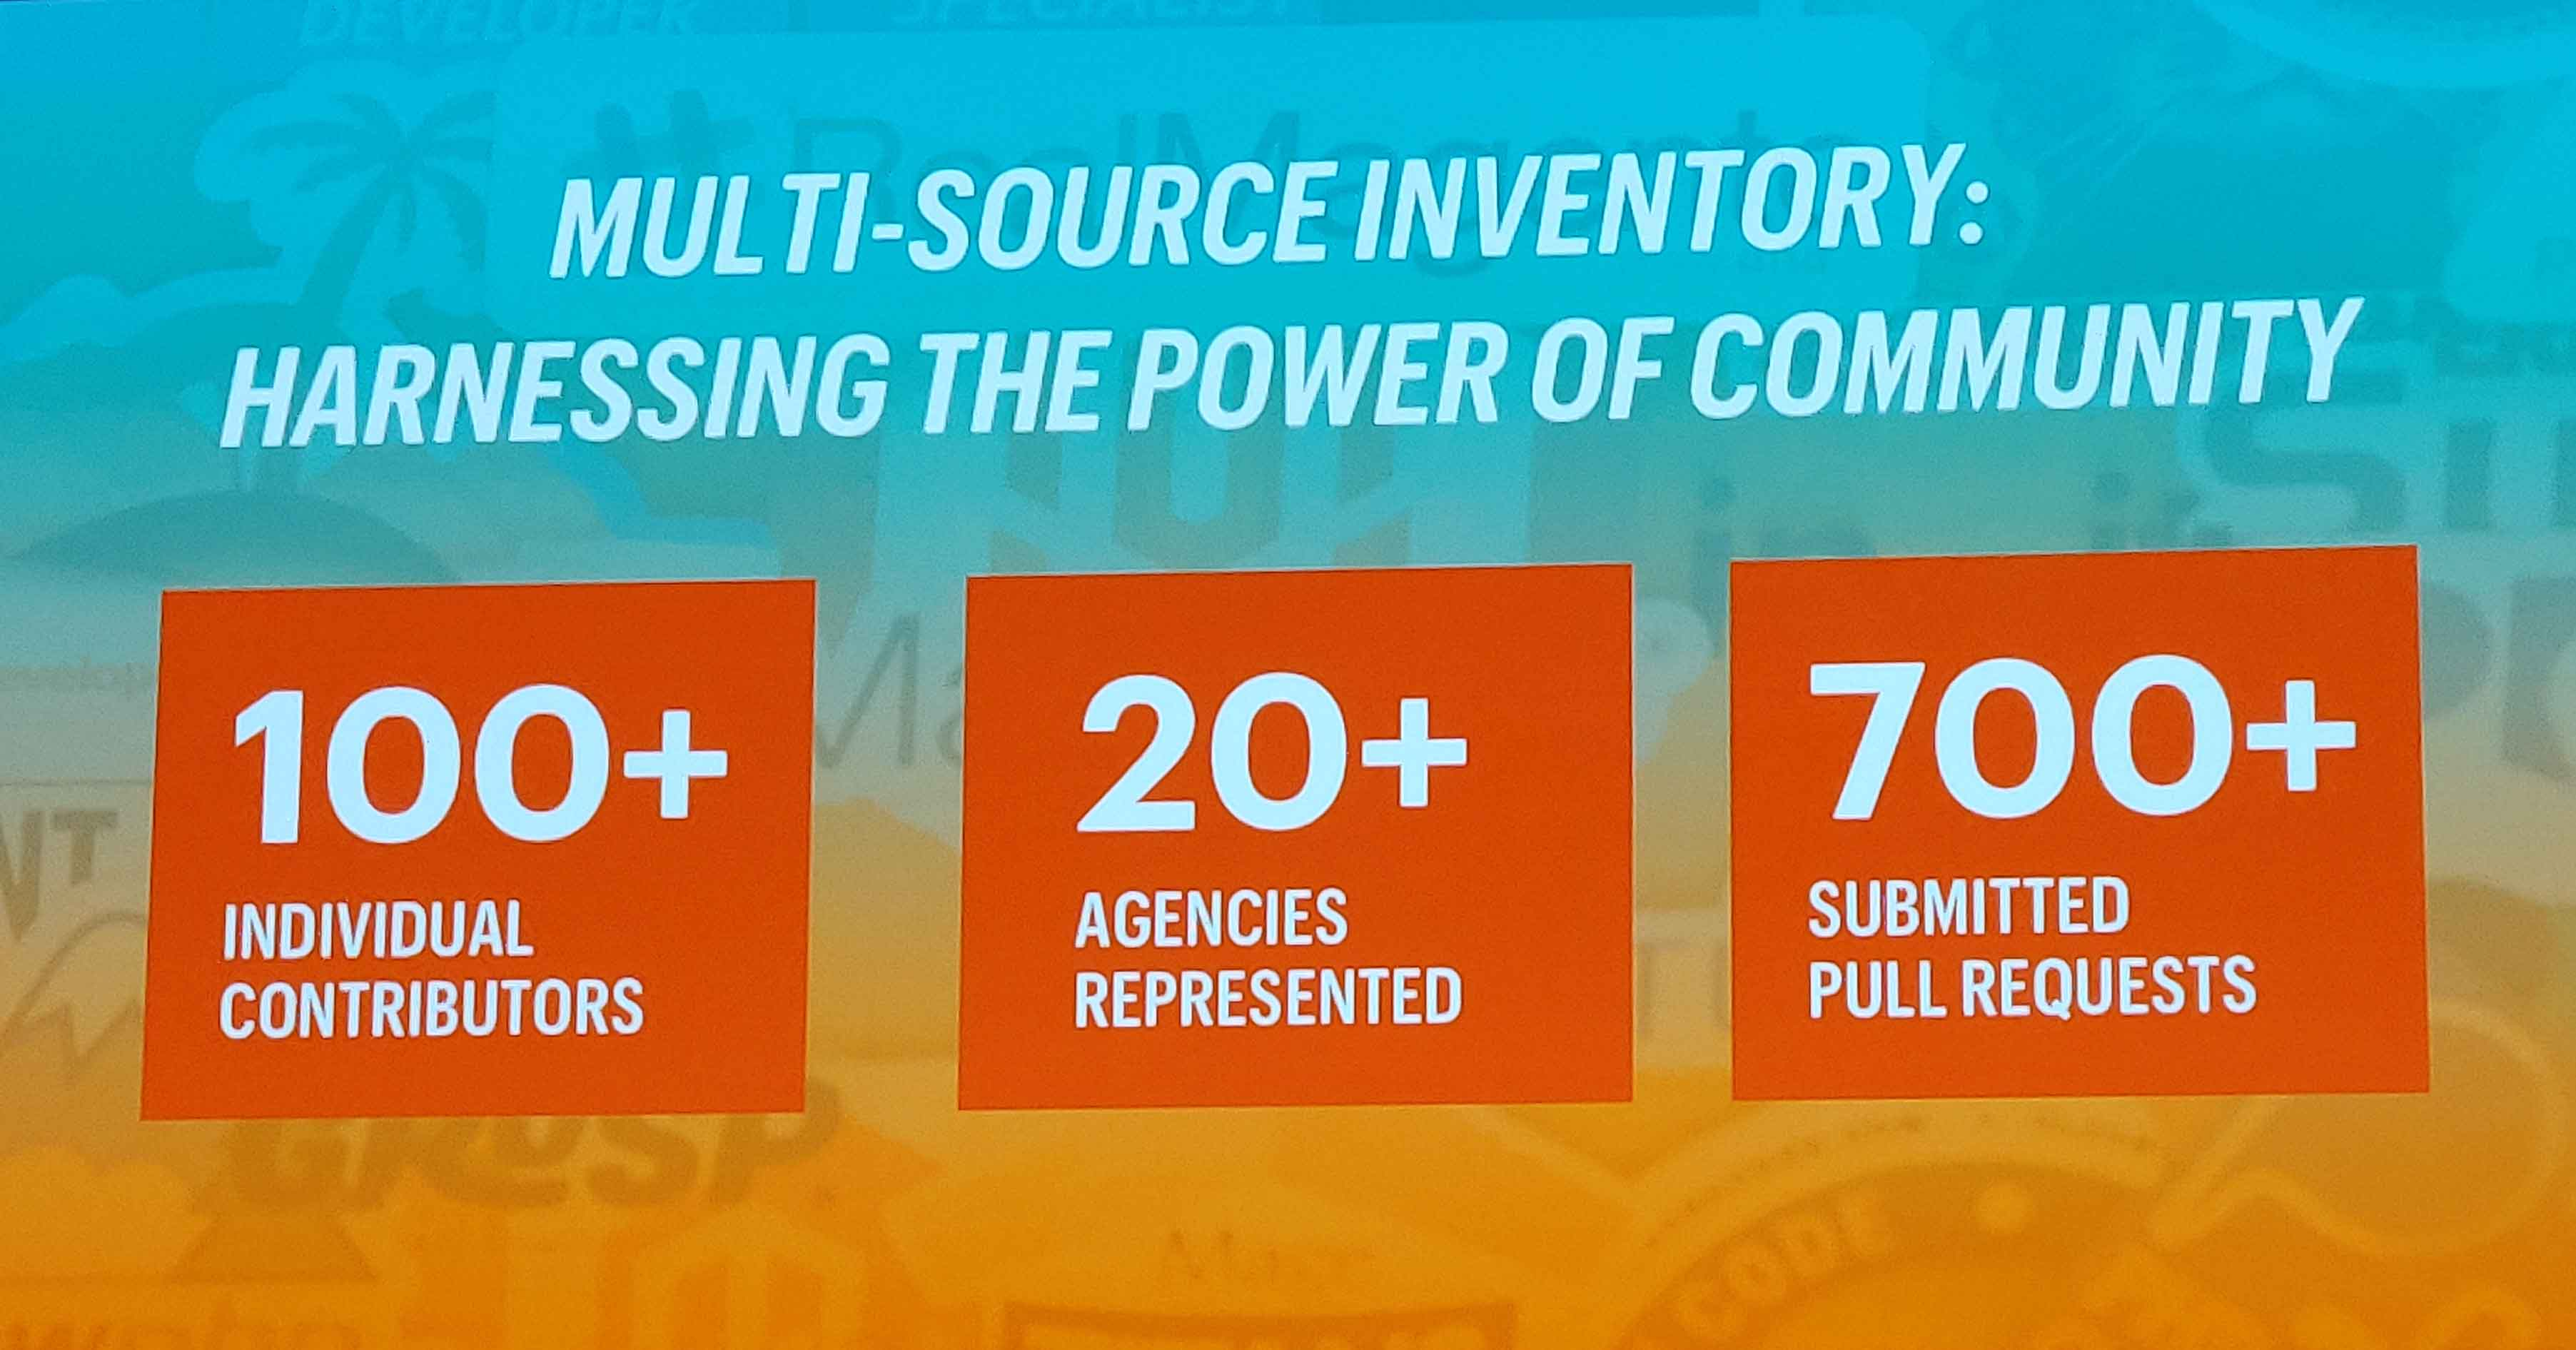 Harnessing the power of the multi-source inventory